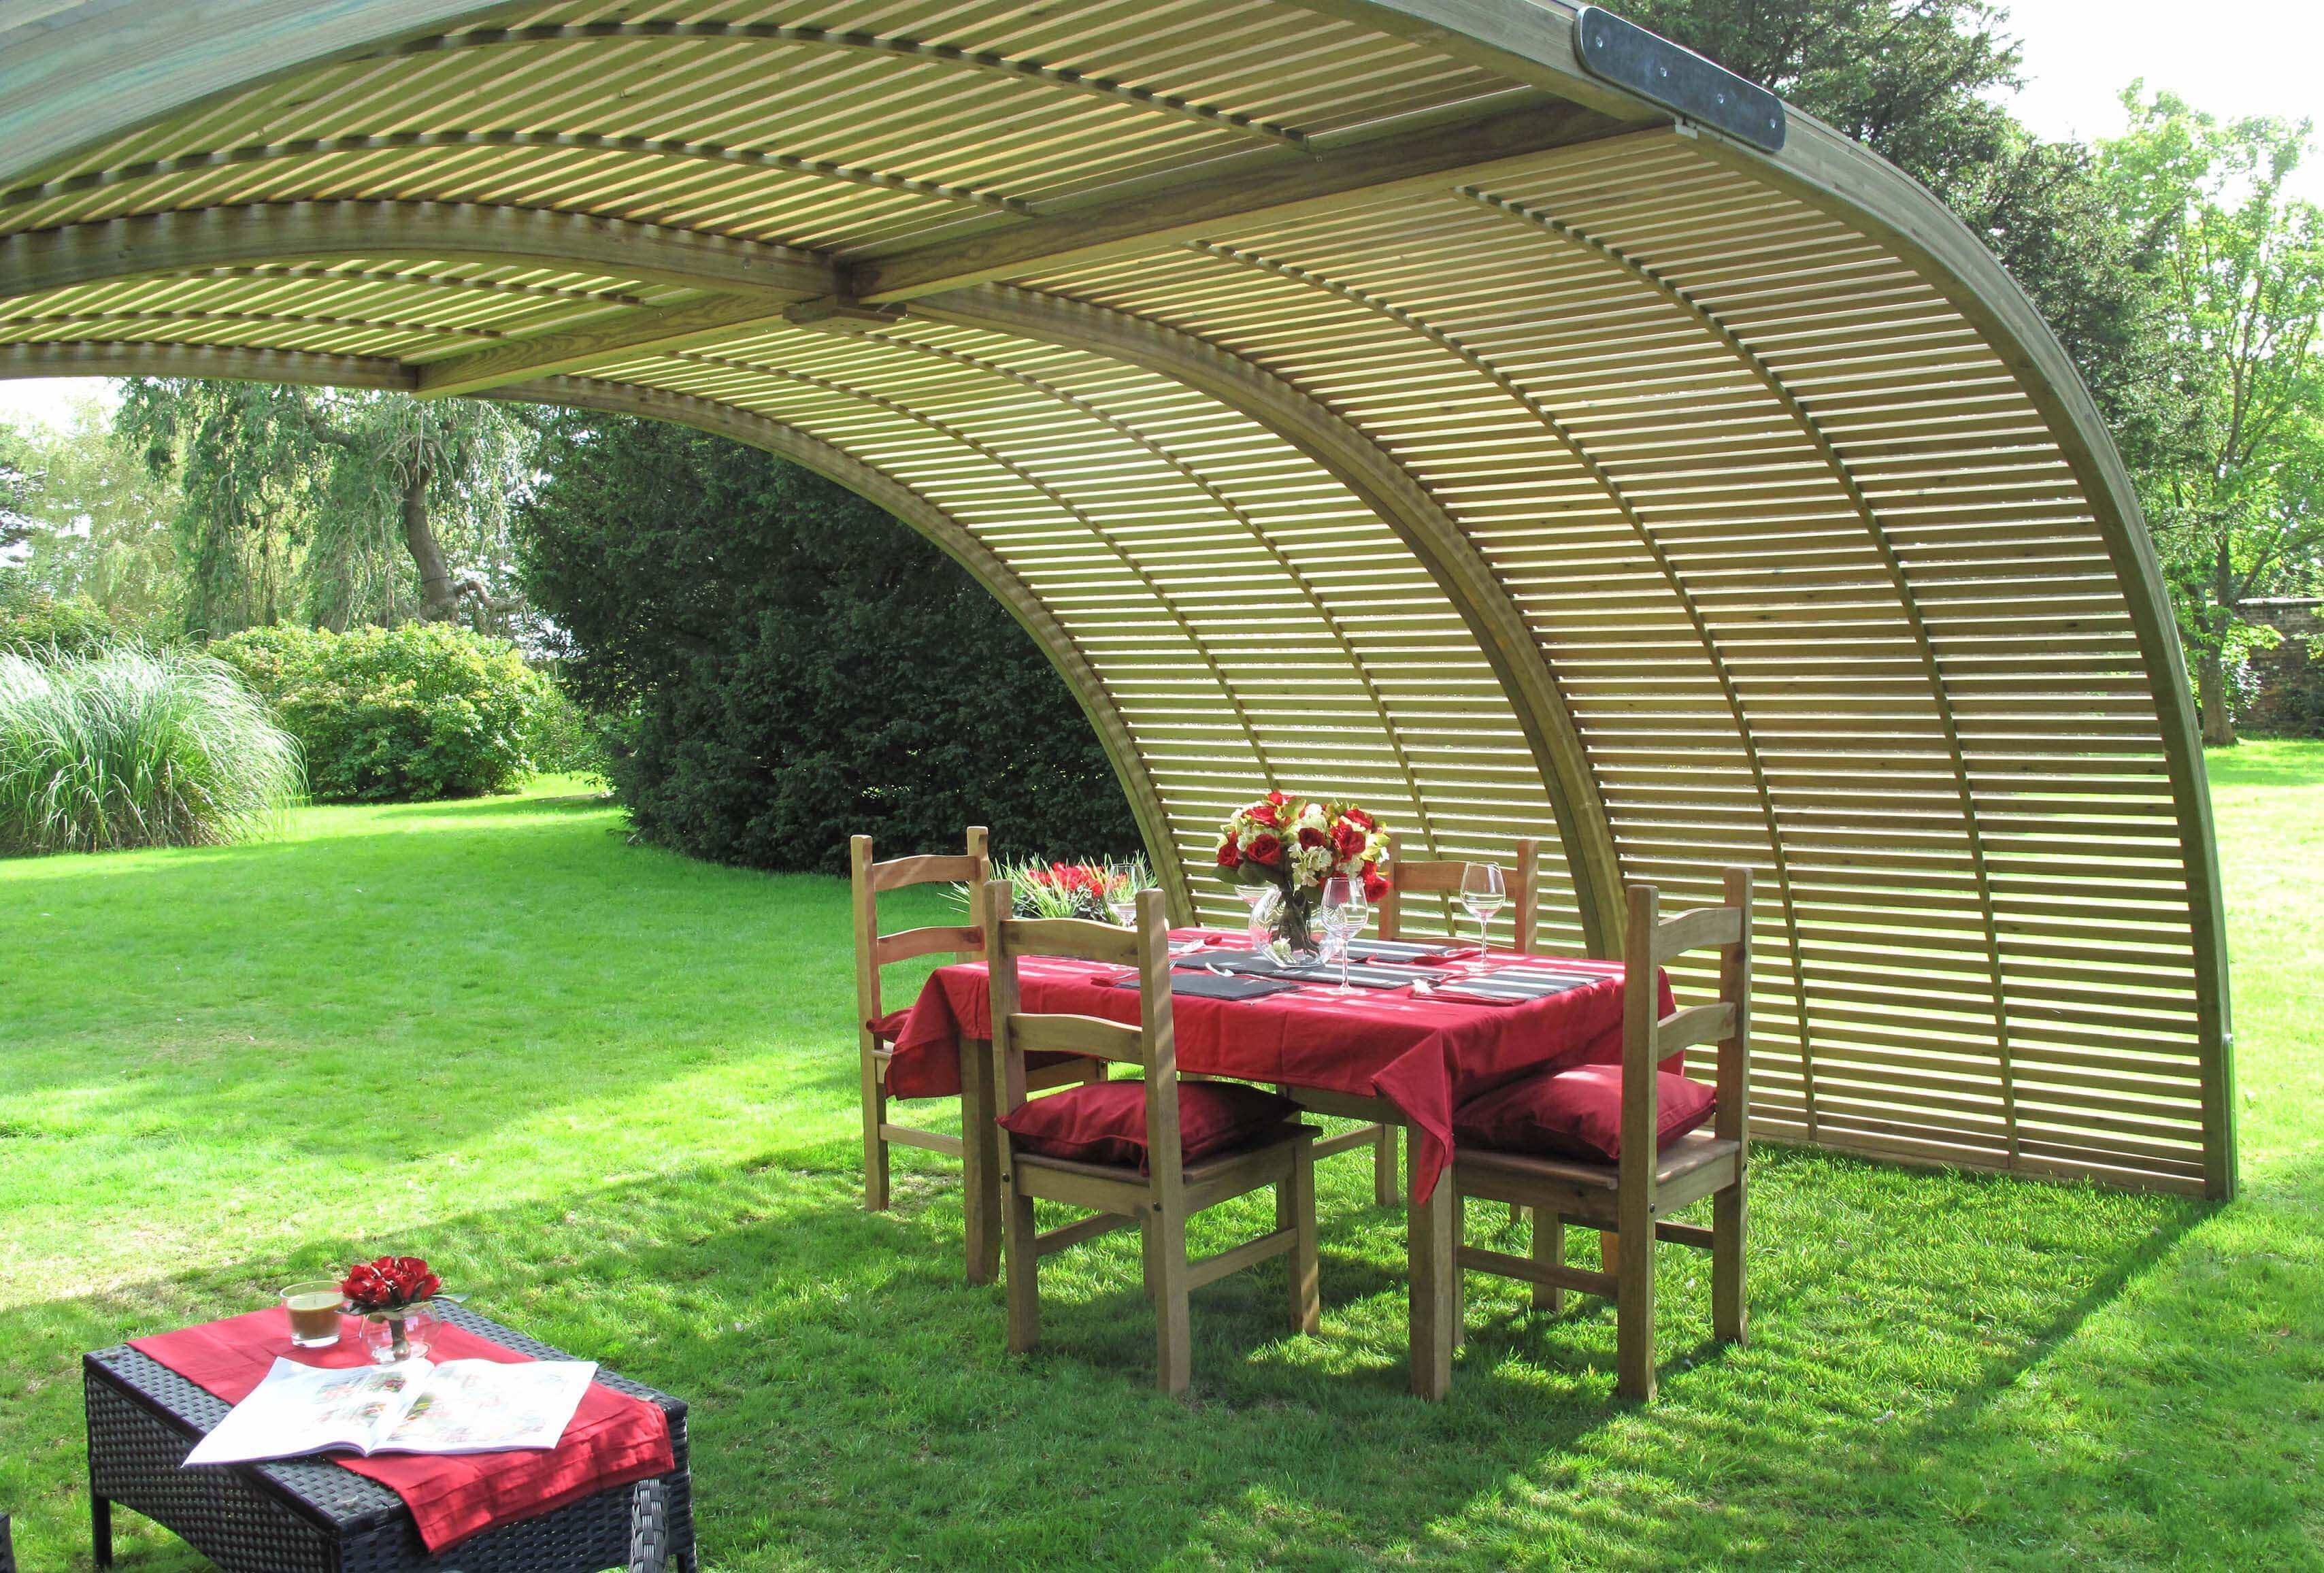 The curve garden shelter